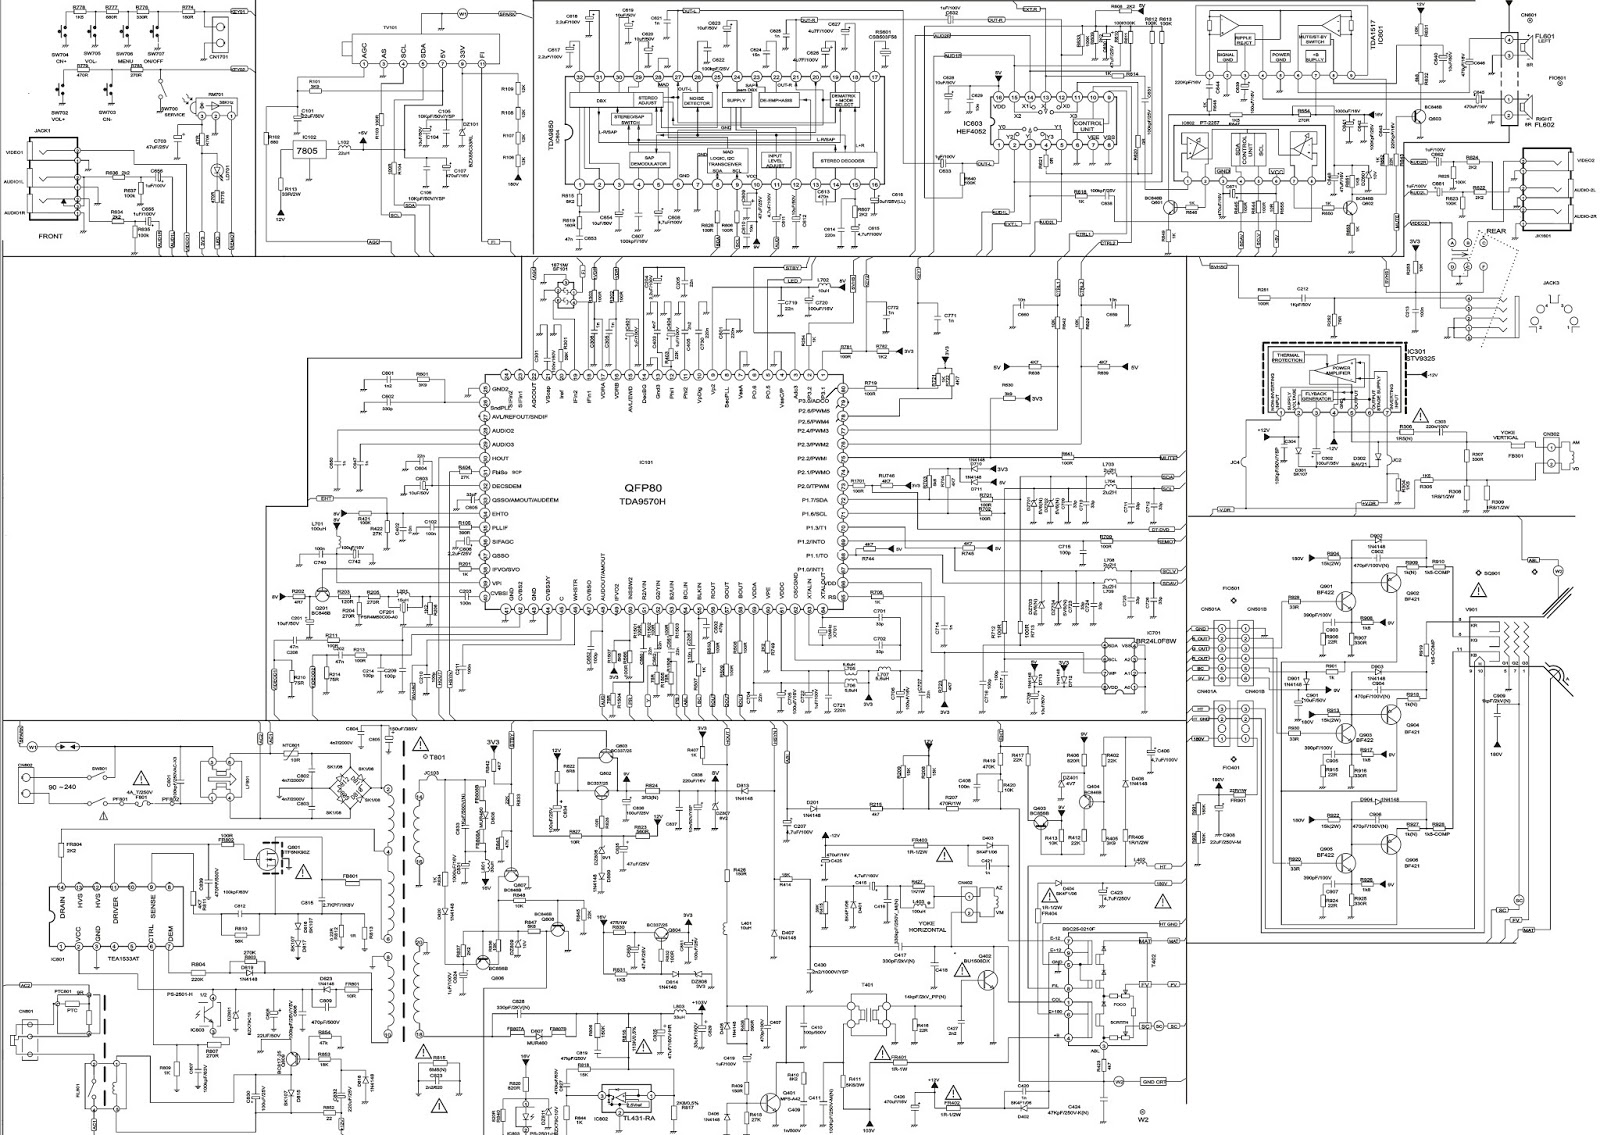 small resolution of crt tv schematic diagram wiring diagram datcrt schematic diagram wiring diagram dat china crt tv schematic